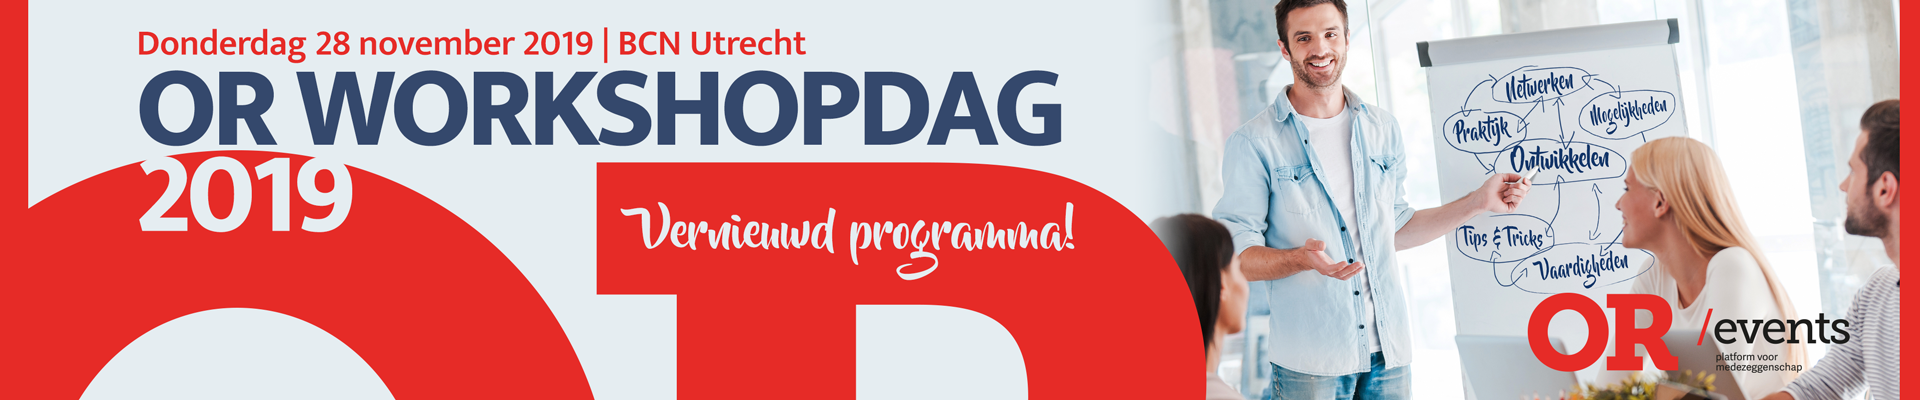 OR Workshopdag najaar